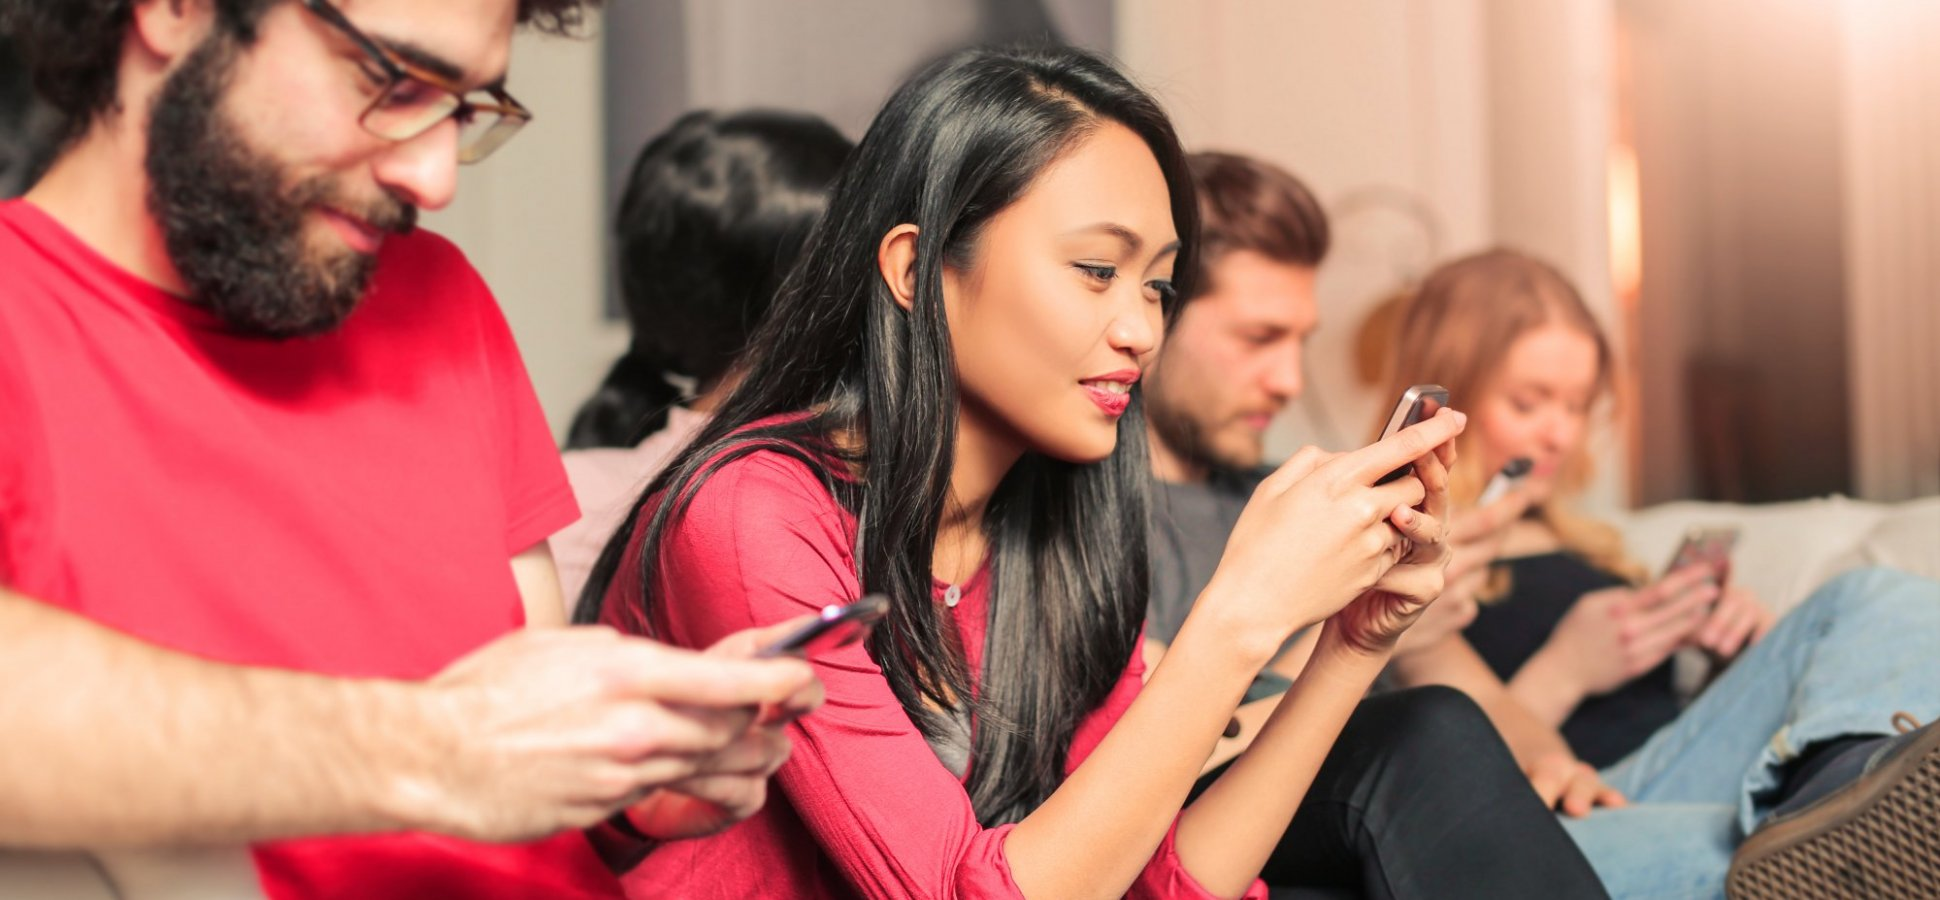 Time For Post-Millennial Marketing: How To Reach Generation Z